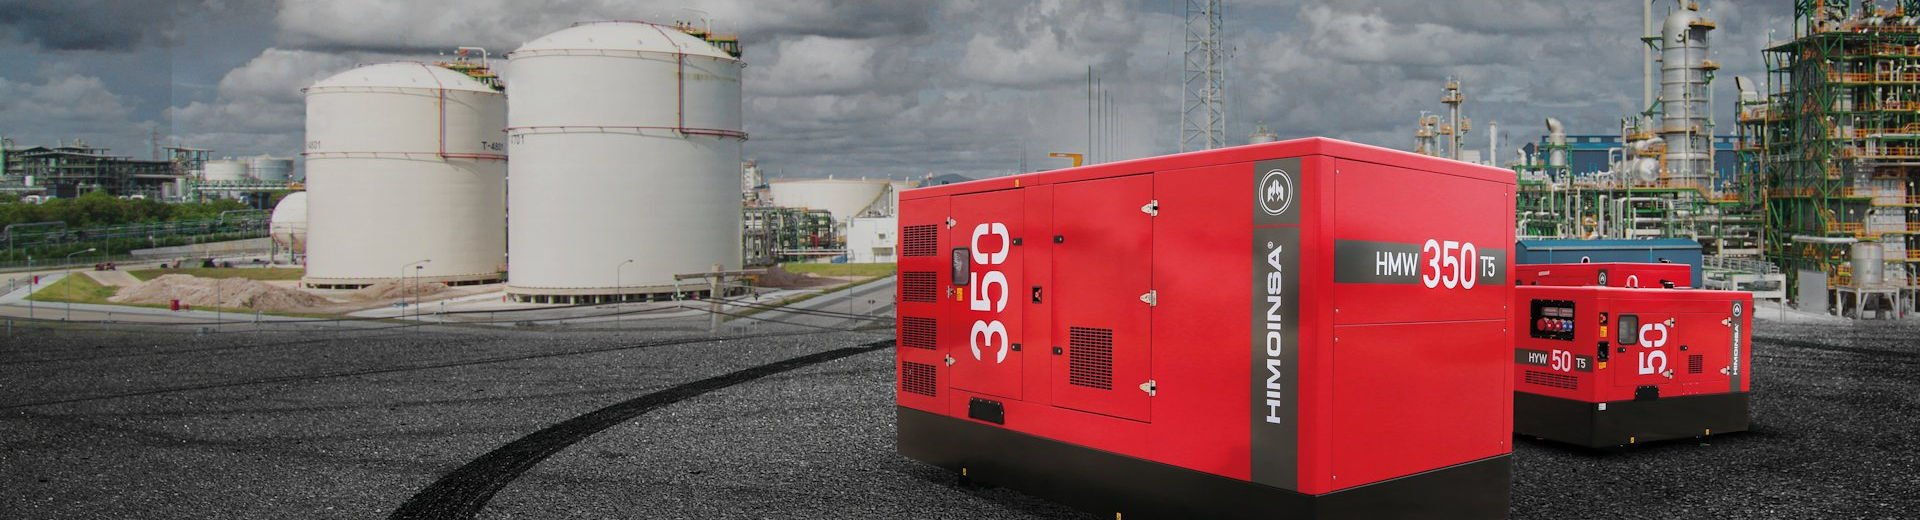 diesel generator hire for standby emergency power 3